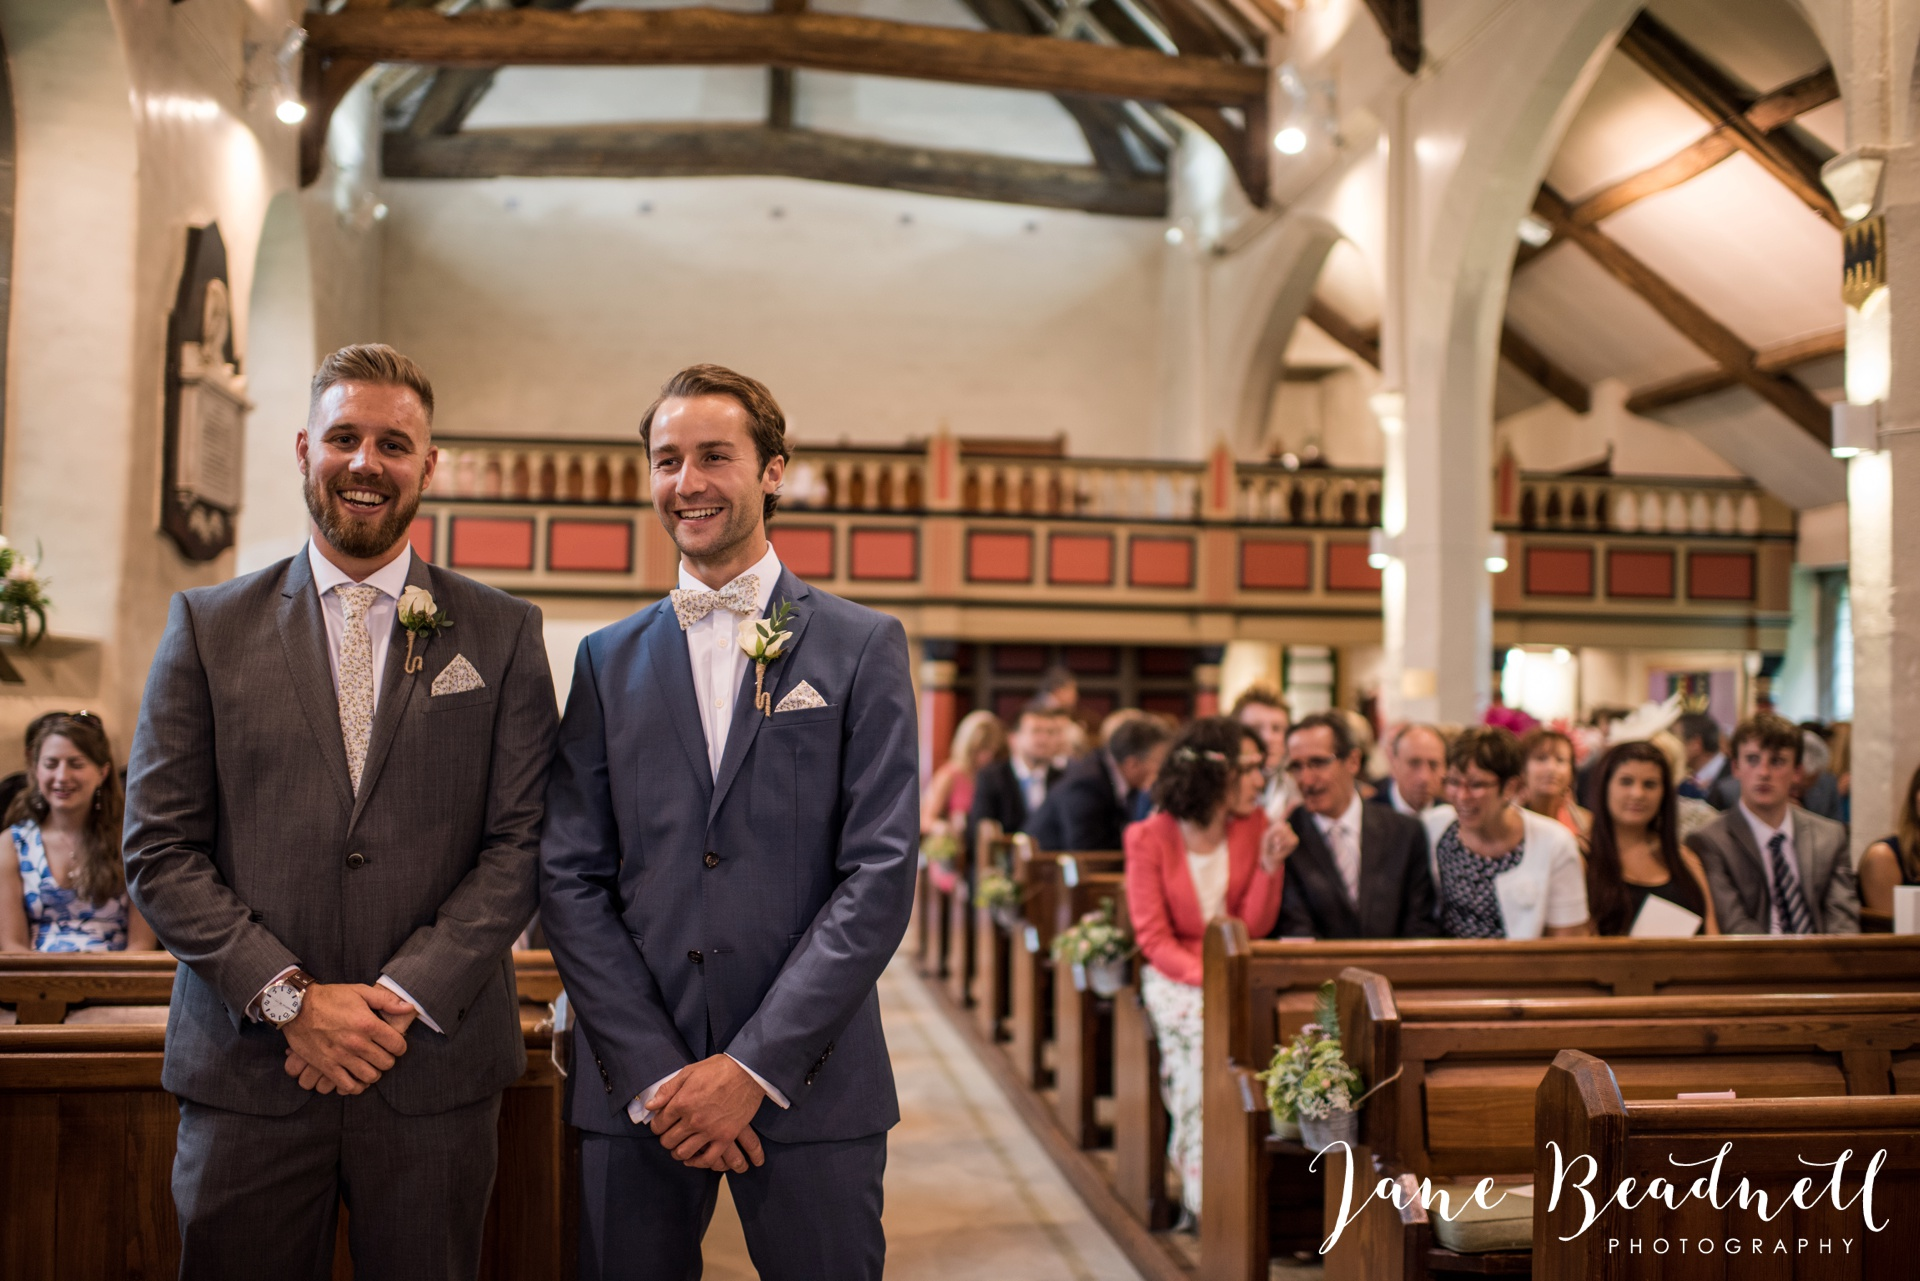 Jane Beadnell fine art wedding photographer Leeds_0025